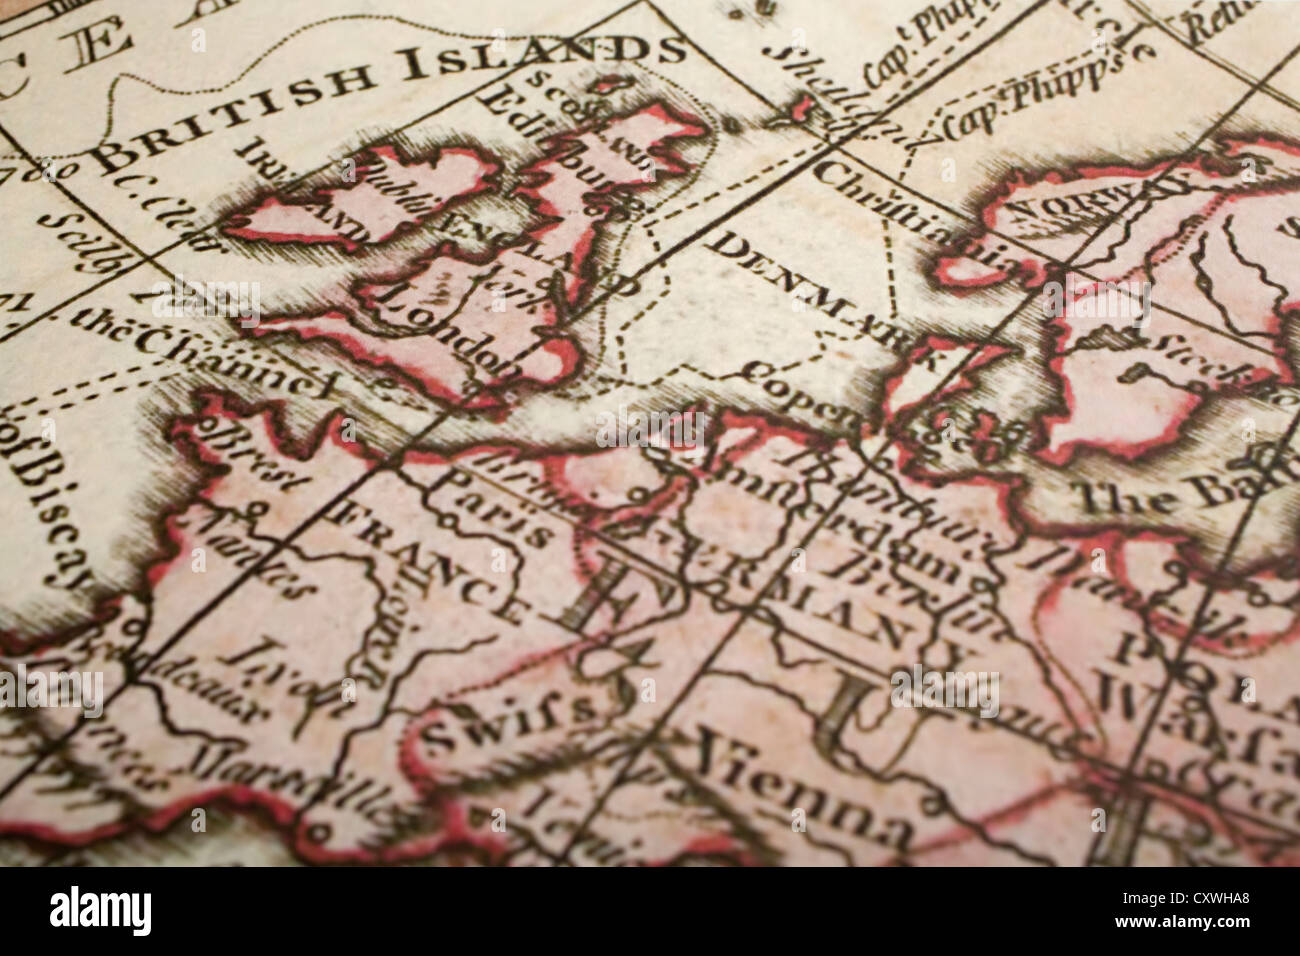 Old Map Of Britain And Europe With The Focus On London Map Is From